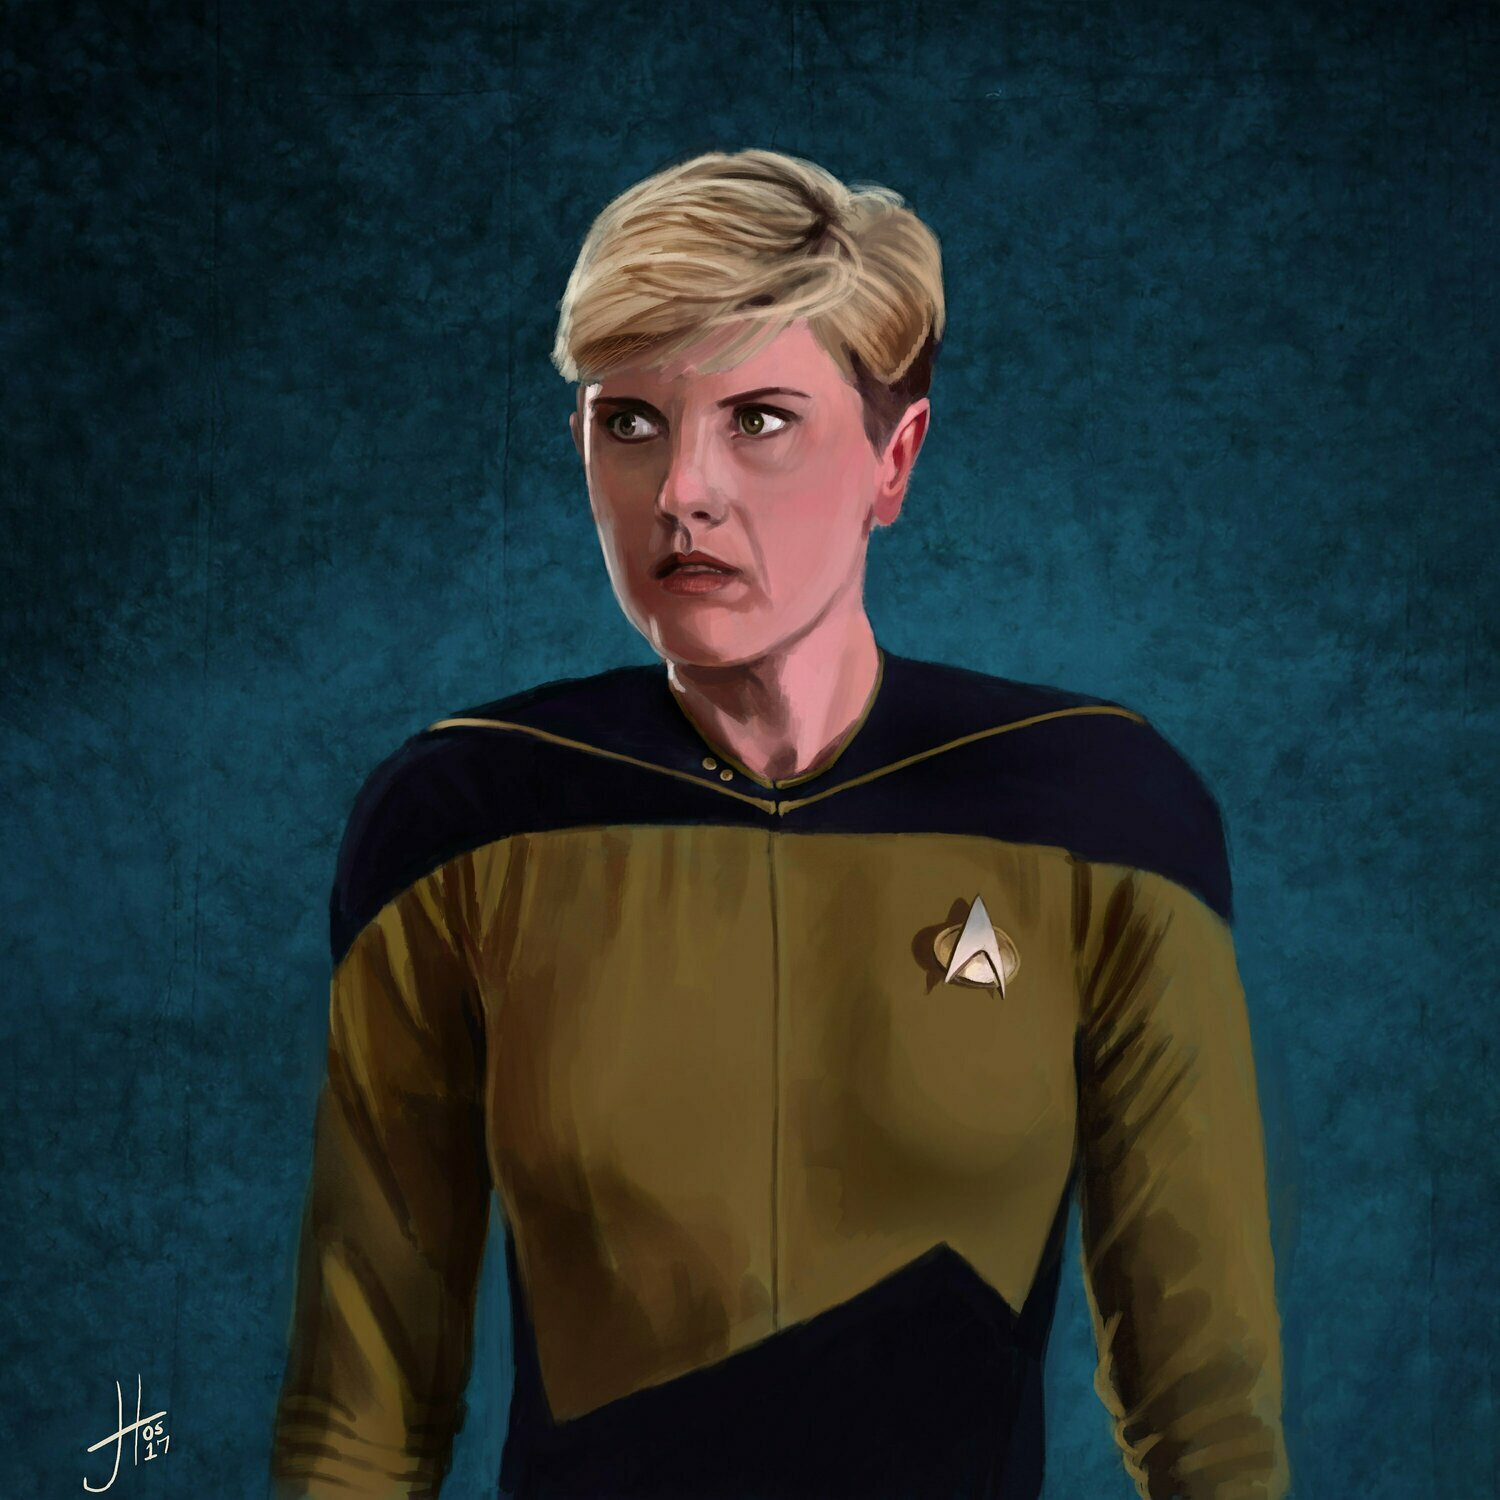 Star Trek Tasha Yar Denise Crosby Art Print